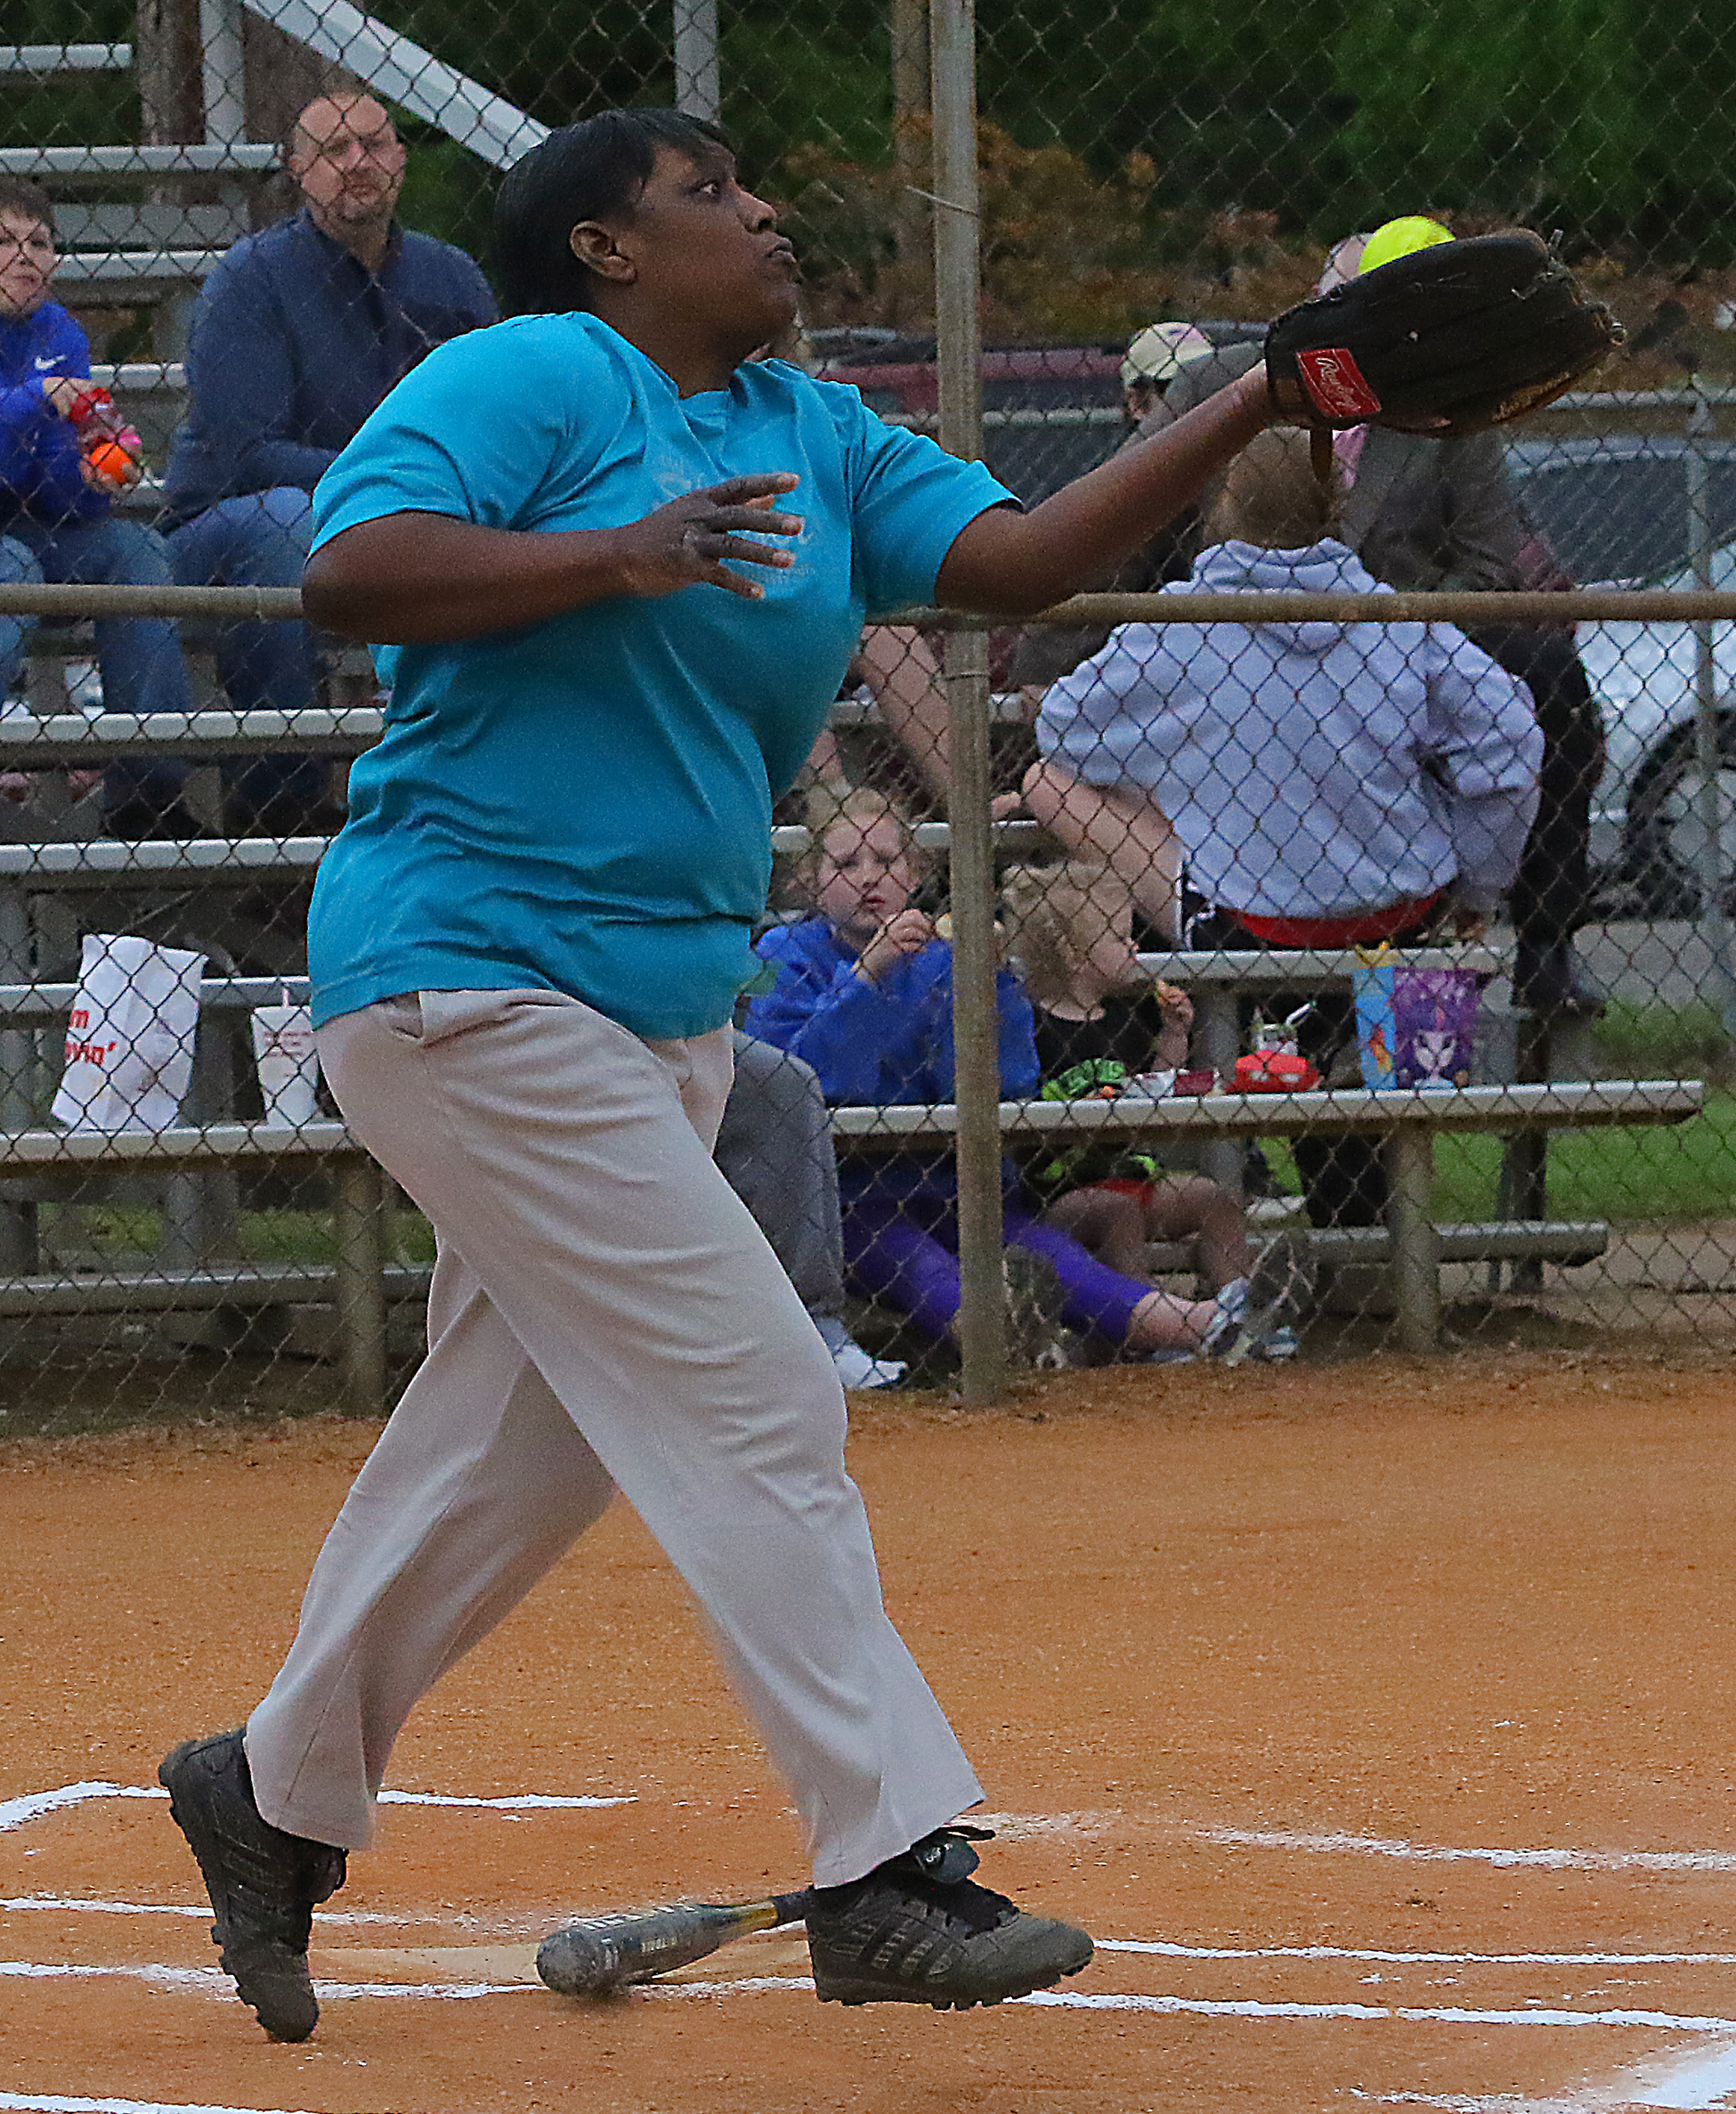 Murfreesboro had an exciting Softball Season!